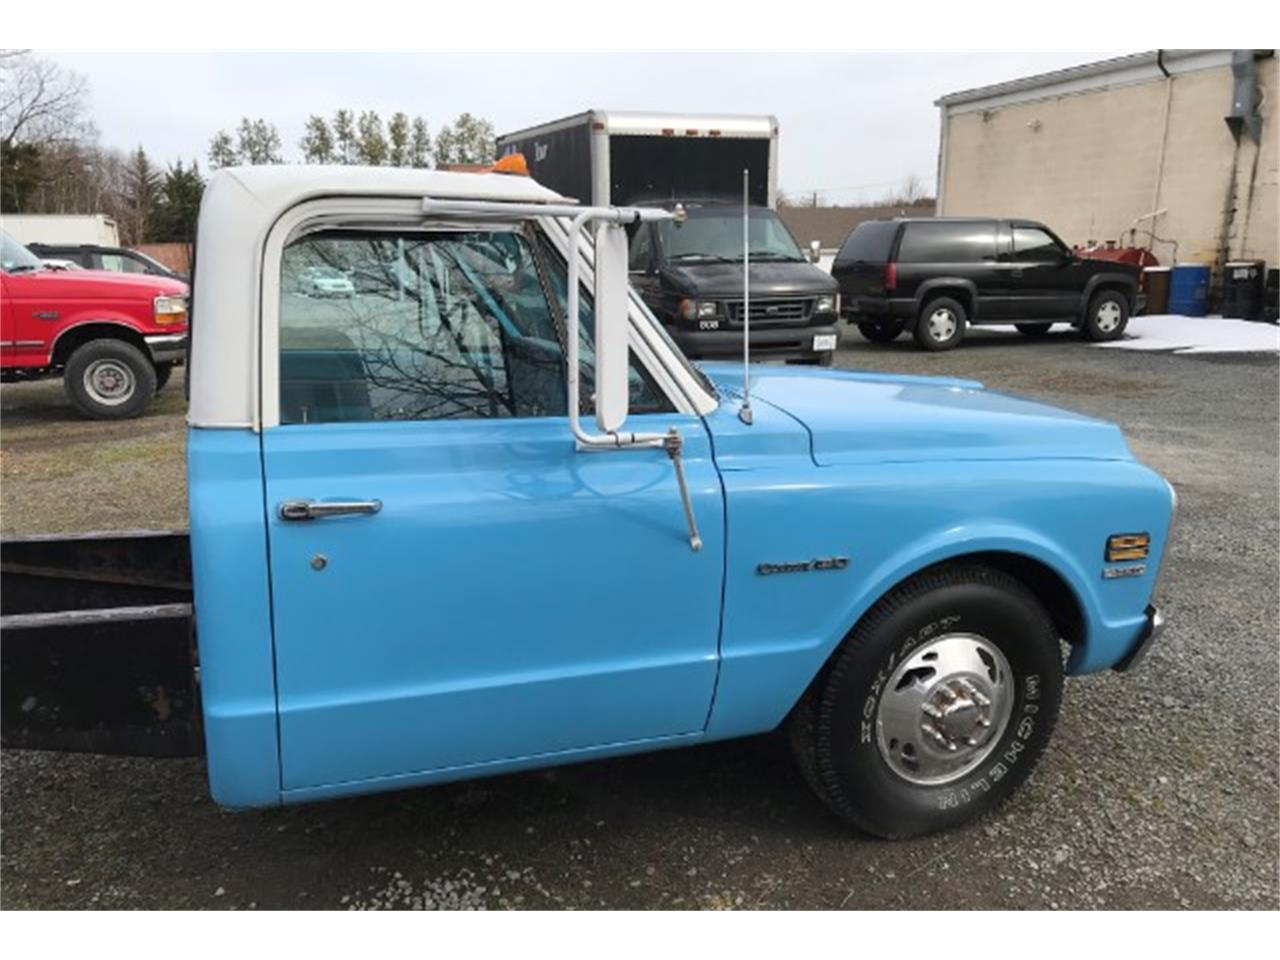 Large Picture of Classic 1971 Chevrolet 1 Ton Truck - $7,900.00 Offered by Champion Pre-Owned Classics - OLMB